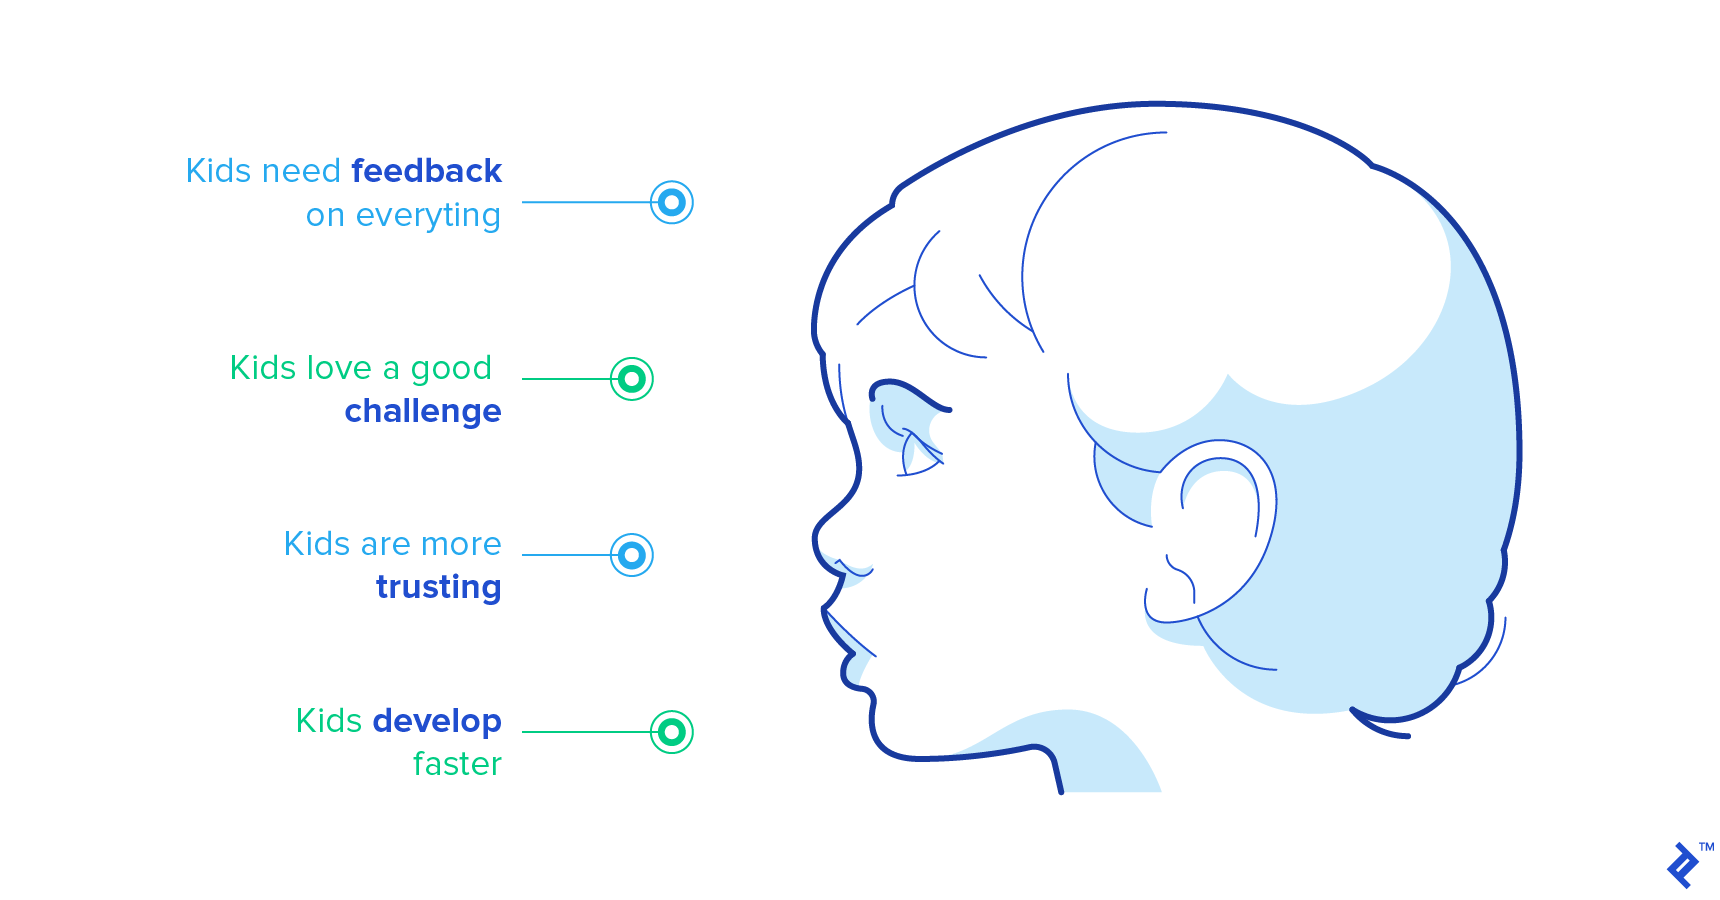 Designing apps for kids